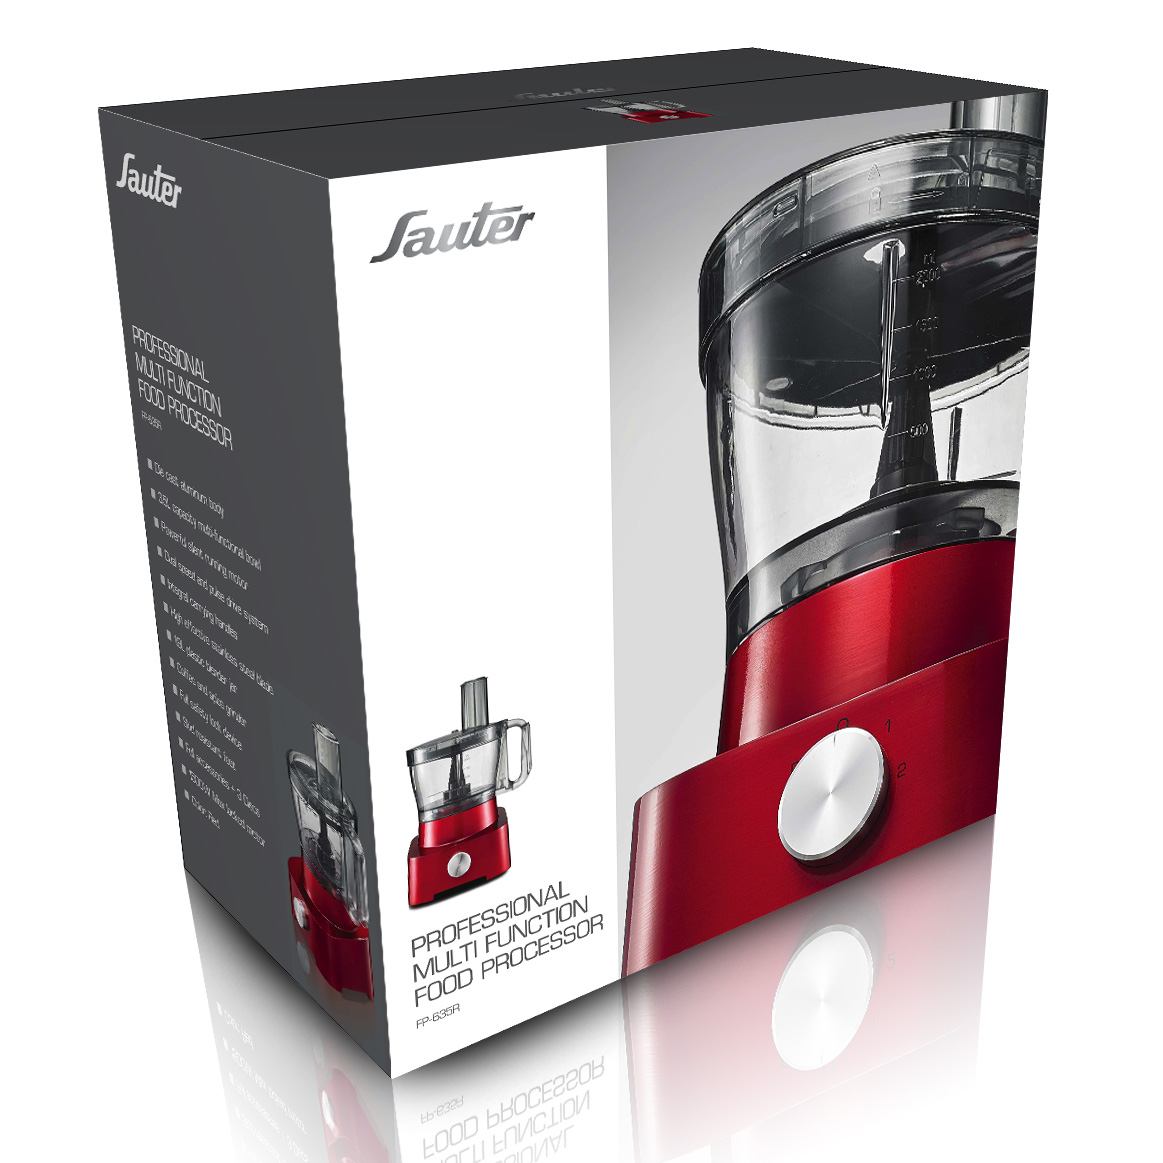 Sauter Food Processor giftbox design